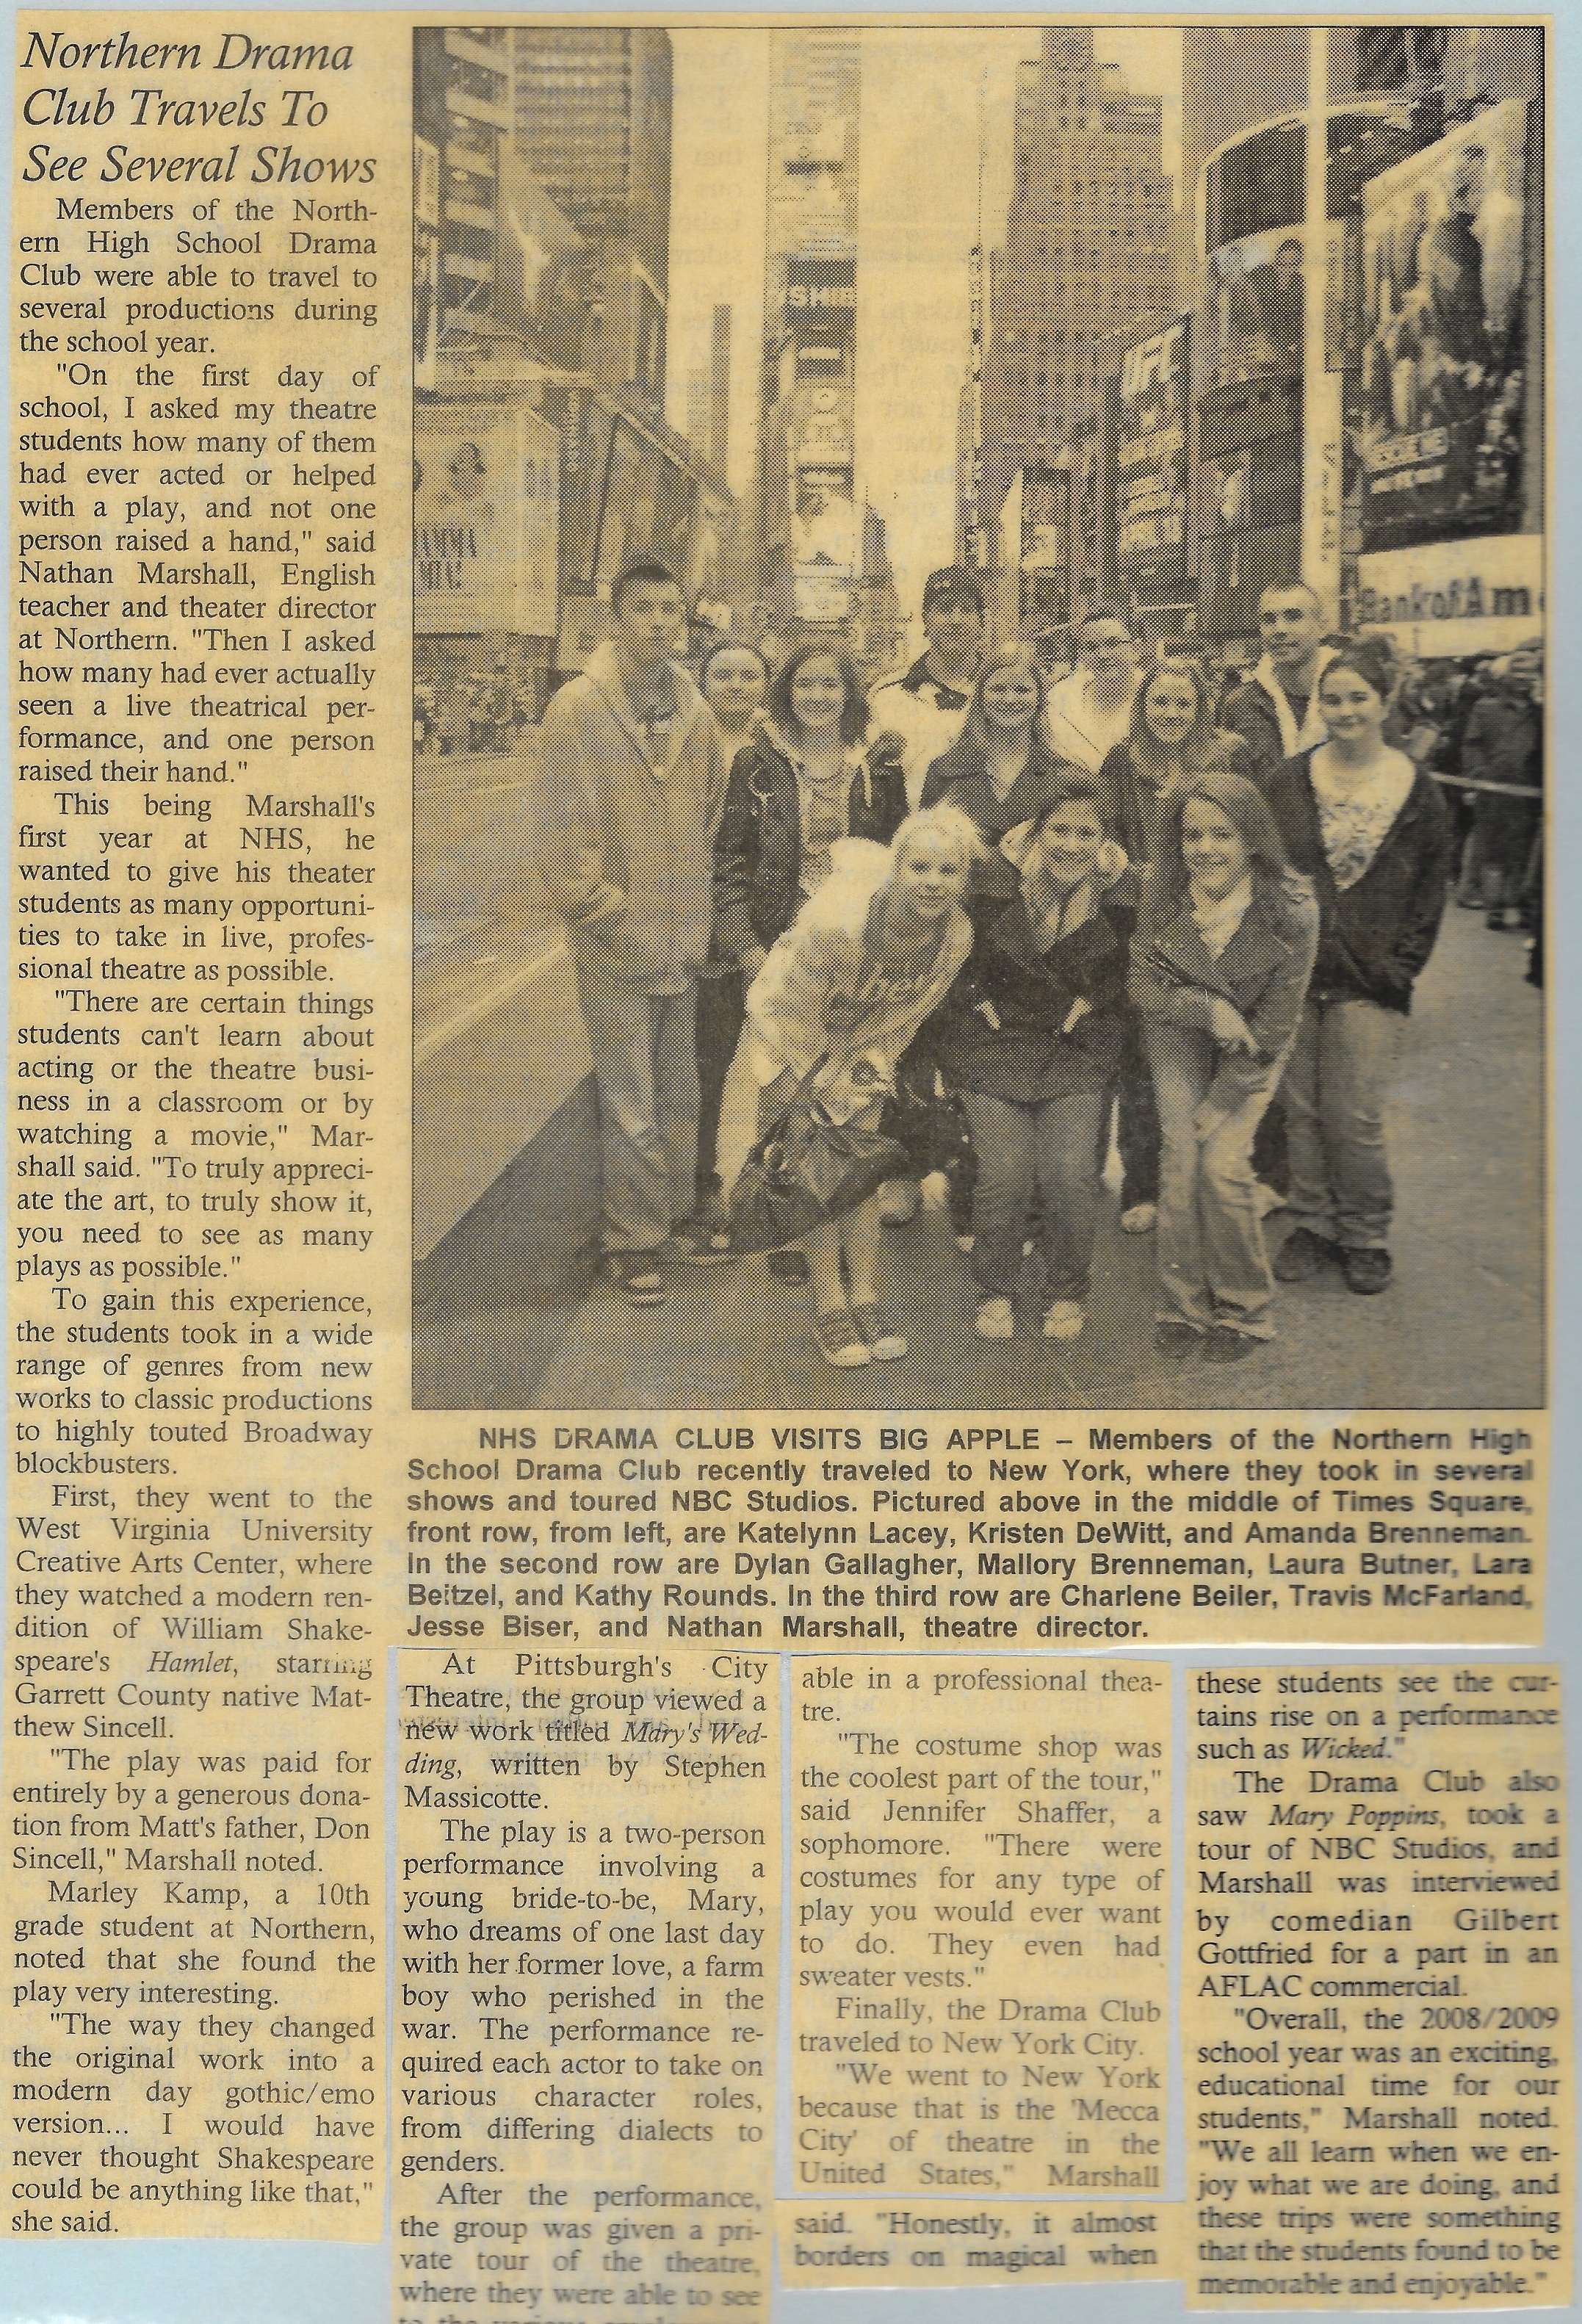 SOME PRESS ON THE FIRST TOUR I LED TO NEW YORK CITY